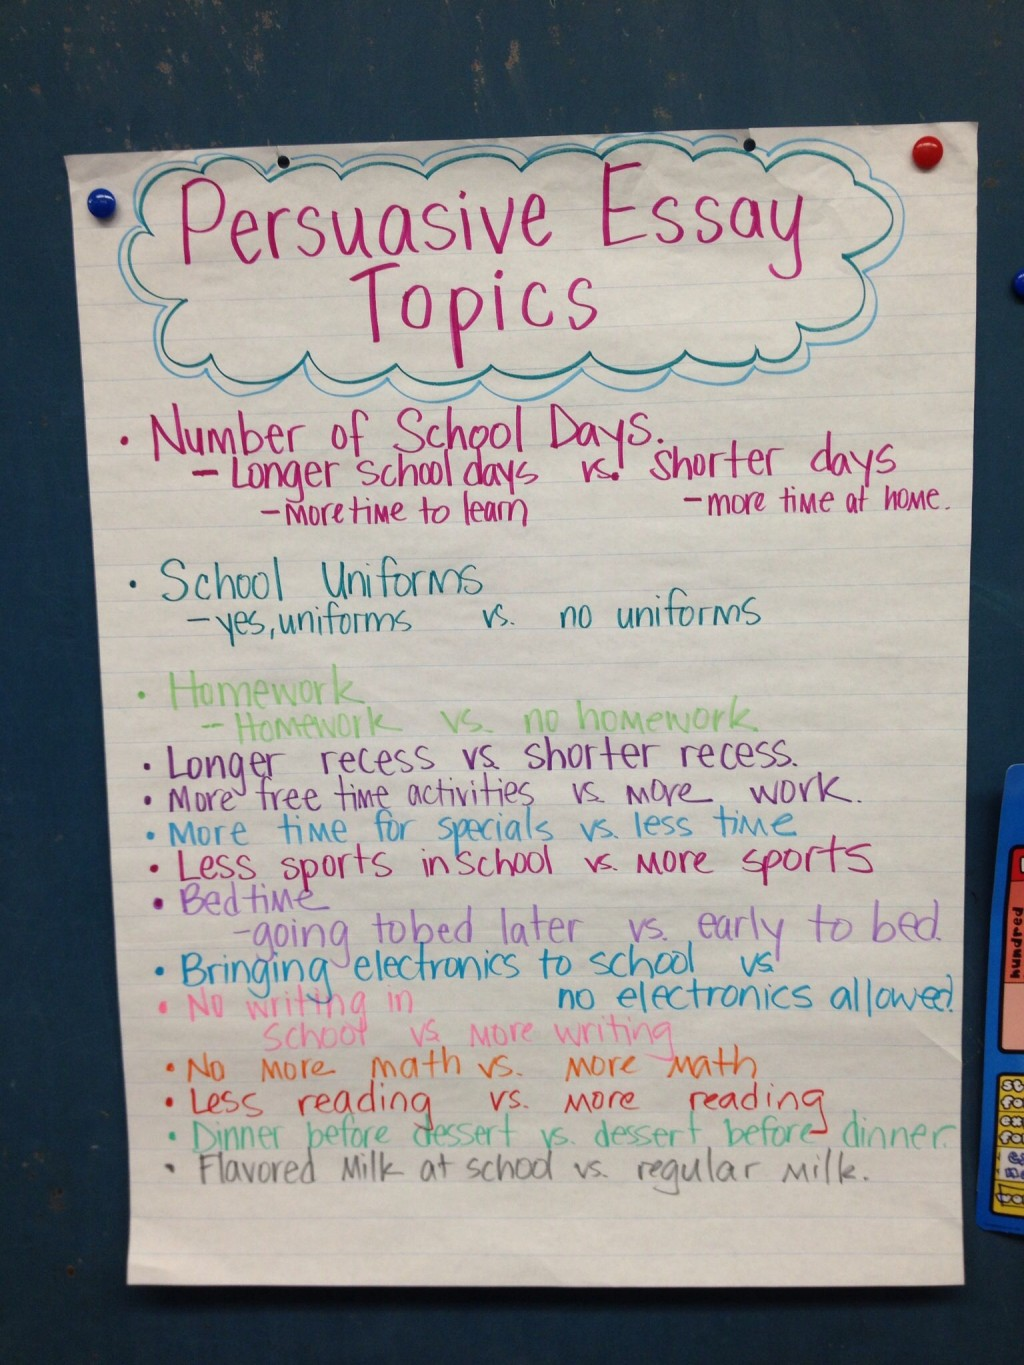 010 Topics For Persuasive Essay Example Breathtaking A Best Top 10 Controversial Large